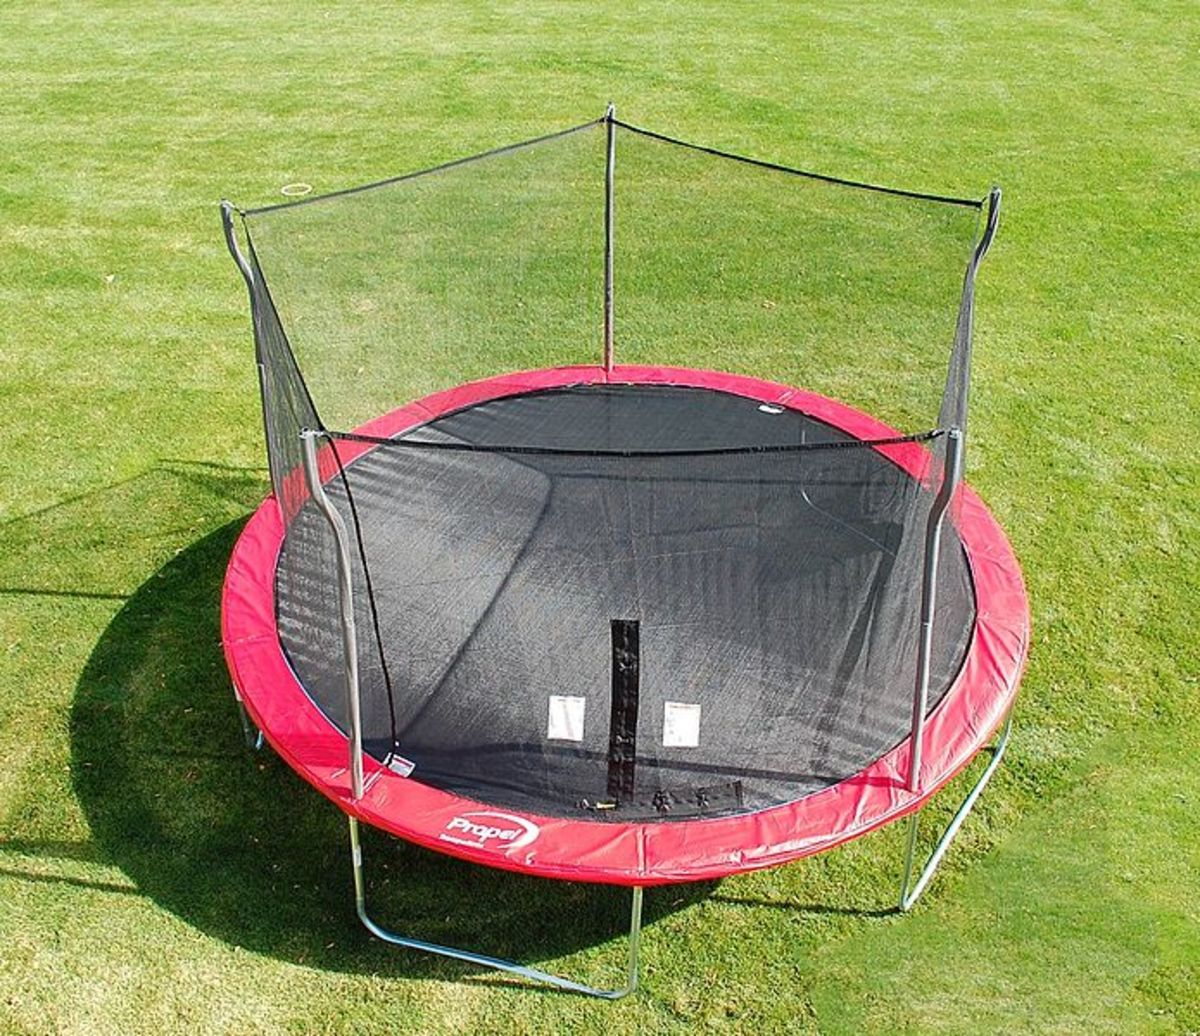 How To Secure A Trampoline